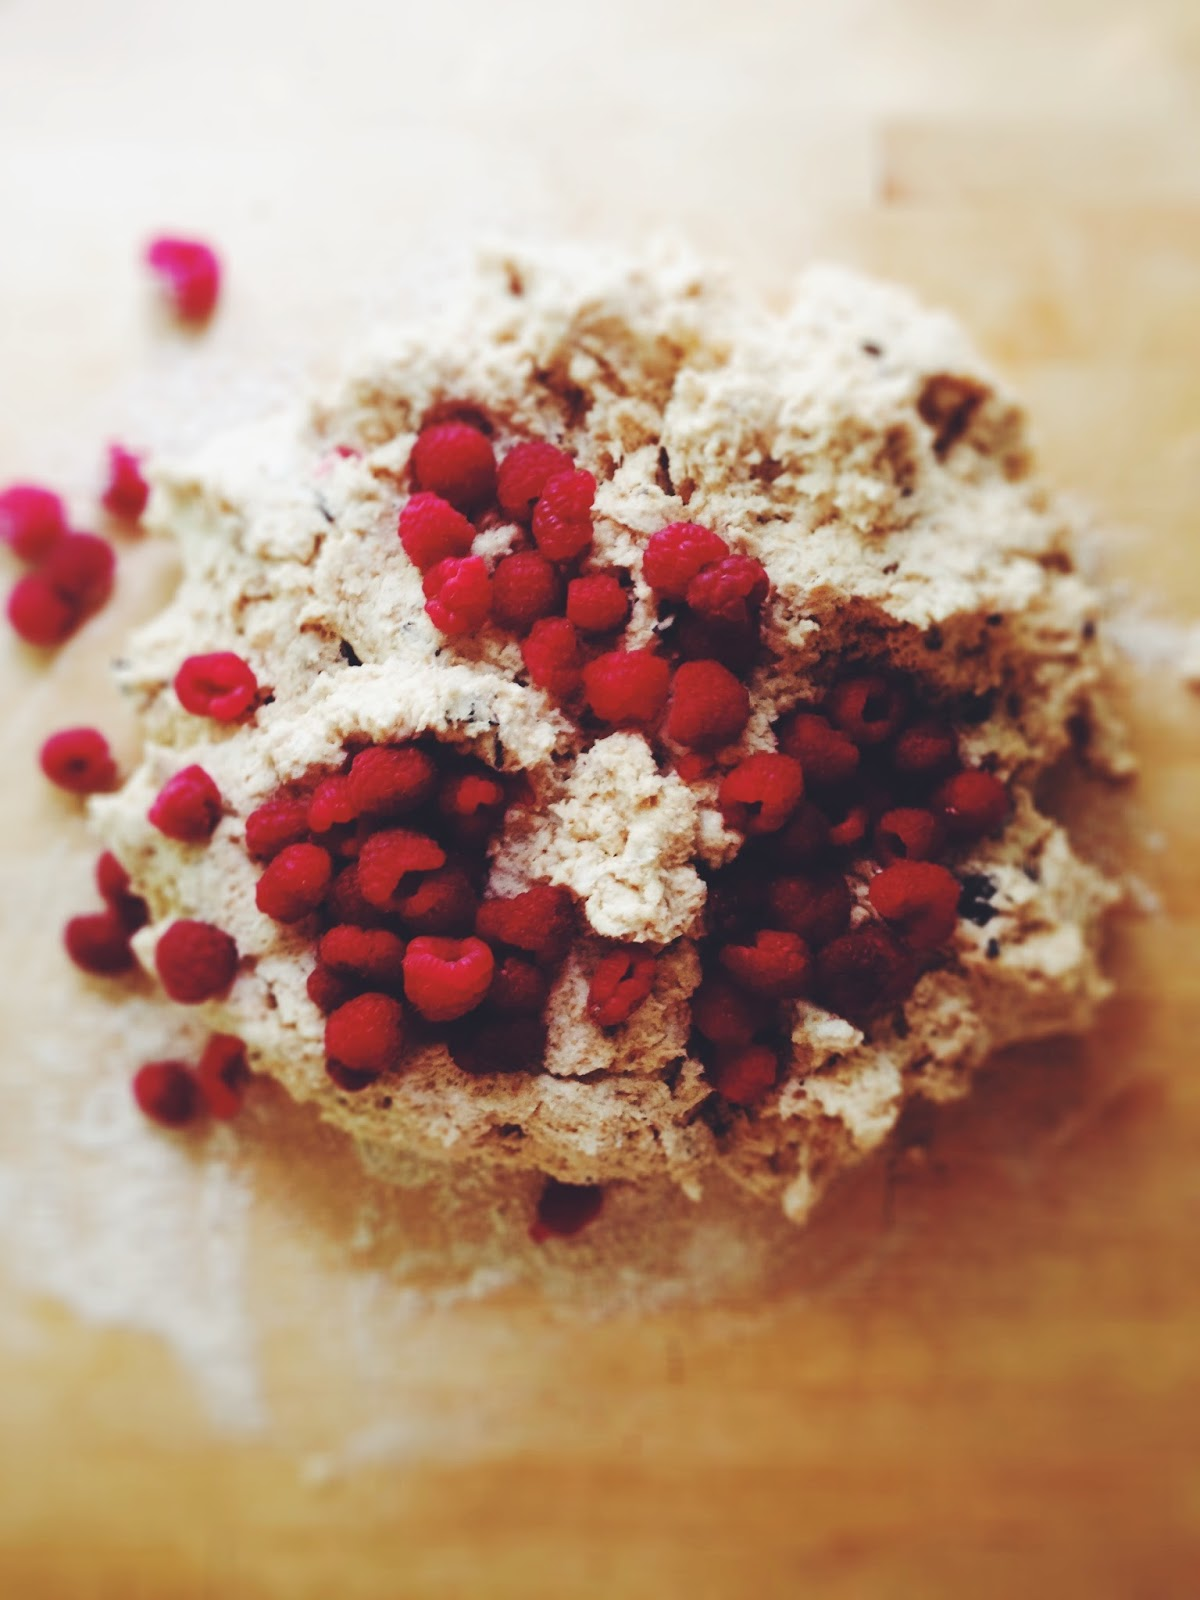 sweetsugarbean: Time Out: Raspberry Dark Chocolate Coconut Scones